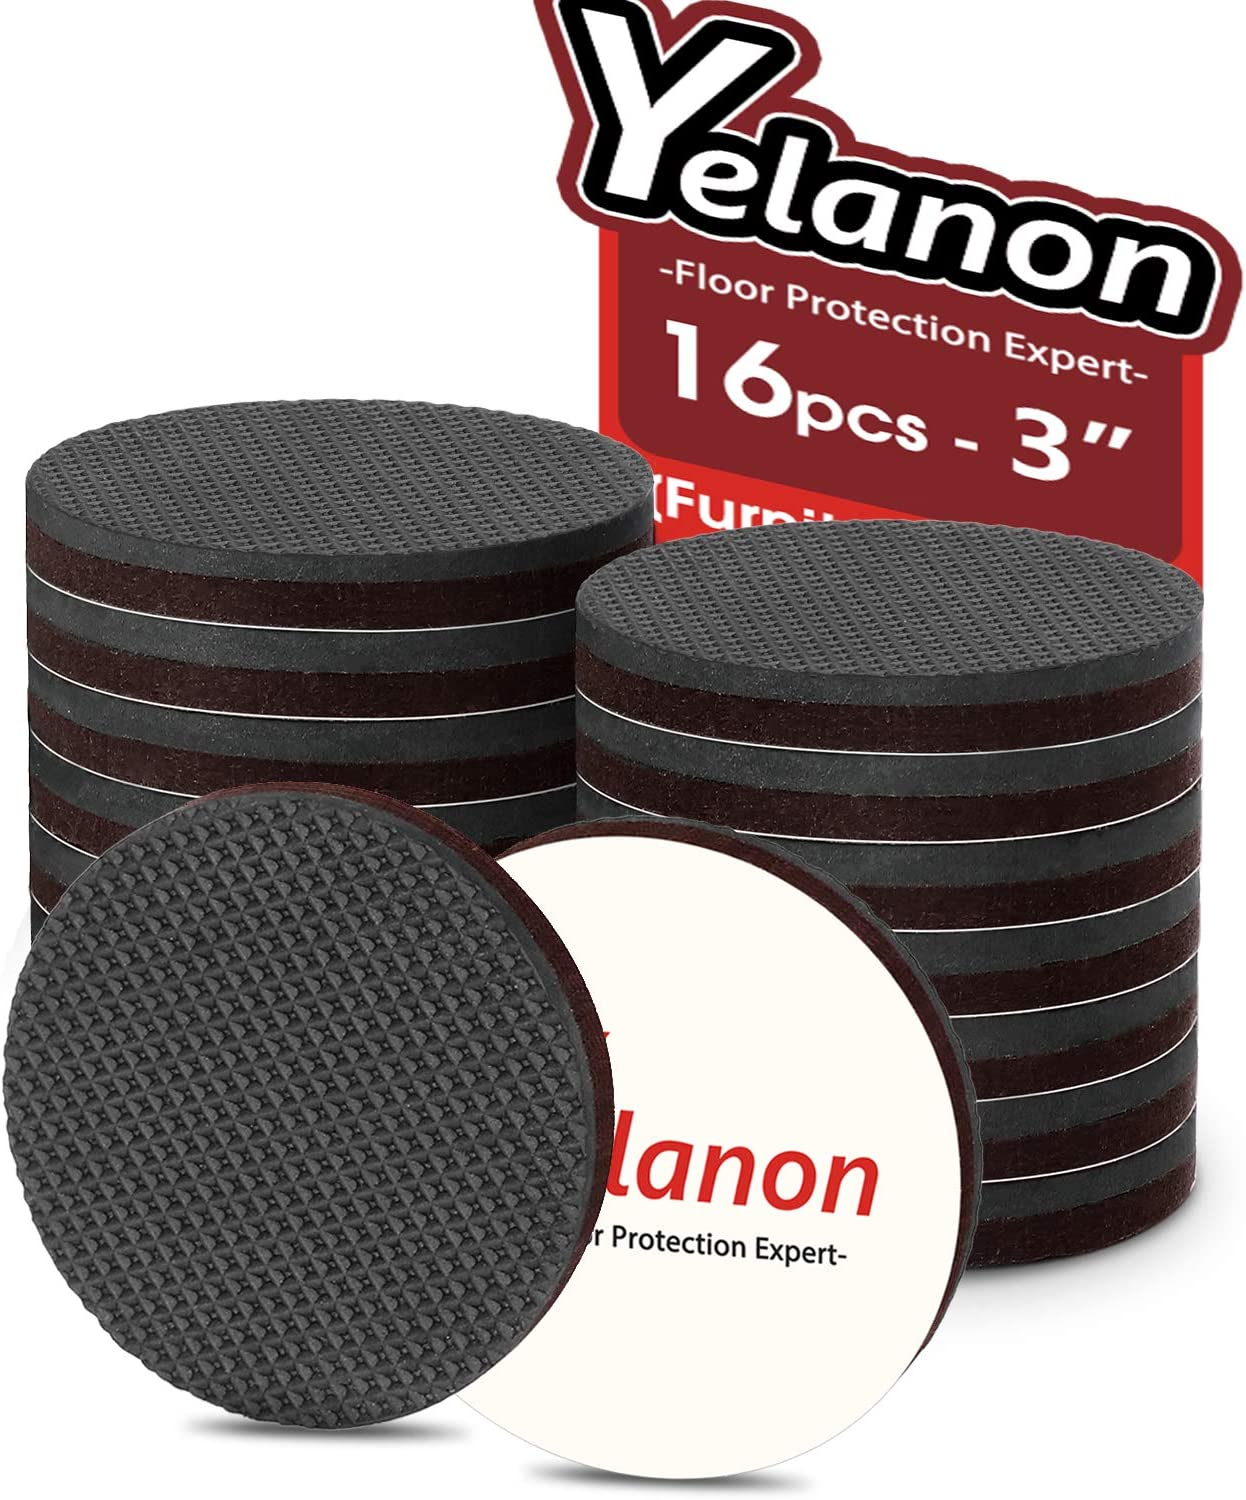 Yelanon Non Slip Furniture Pads - 16pcs 3'' Chair Leg Floor Protectors Furniture Pads for Hardwood Wood Floors Protector Furniture Anti Scratch Self Adhesive Rubber Feet Furniture Grippers